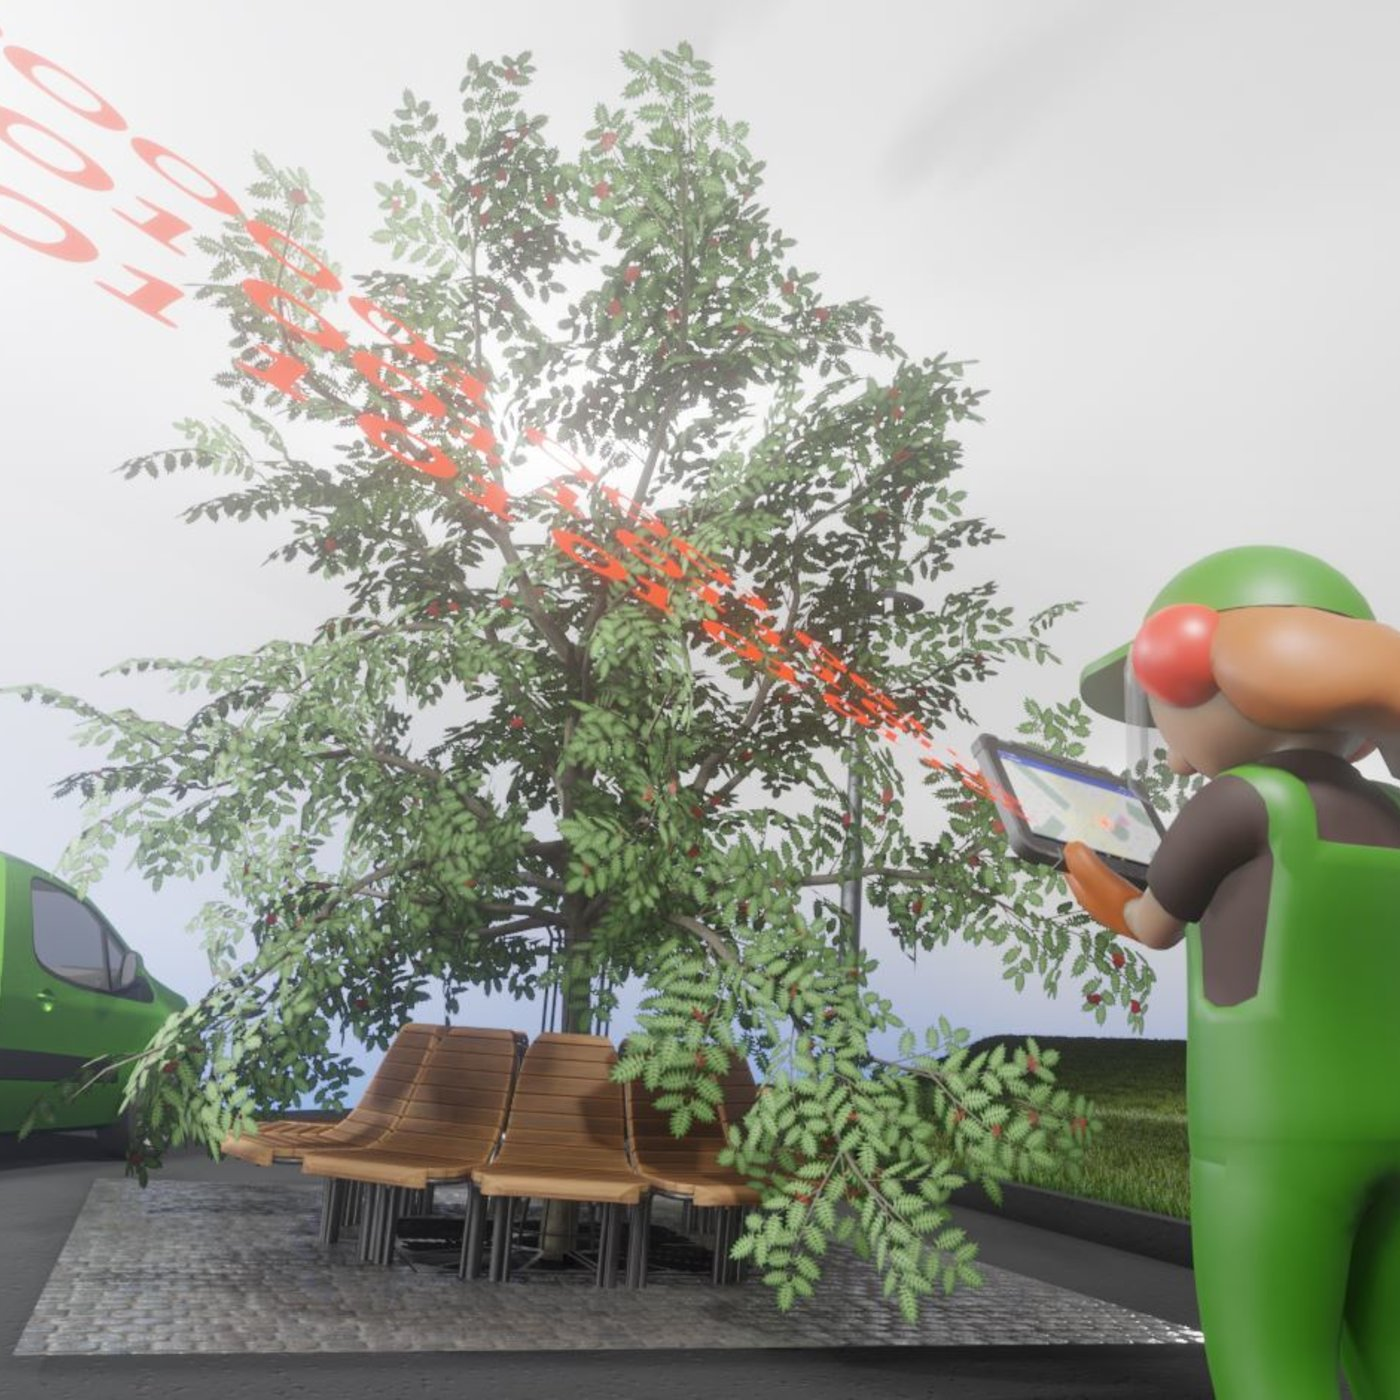 Cutting the Tree with a Chainsaw (Blender-2.90.1 Eevee)